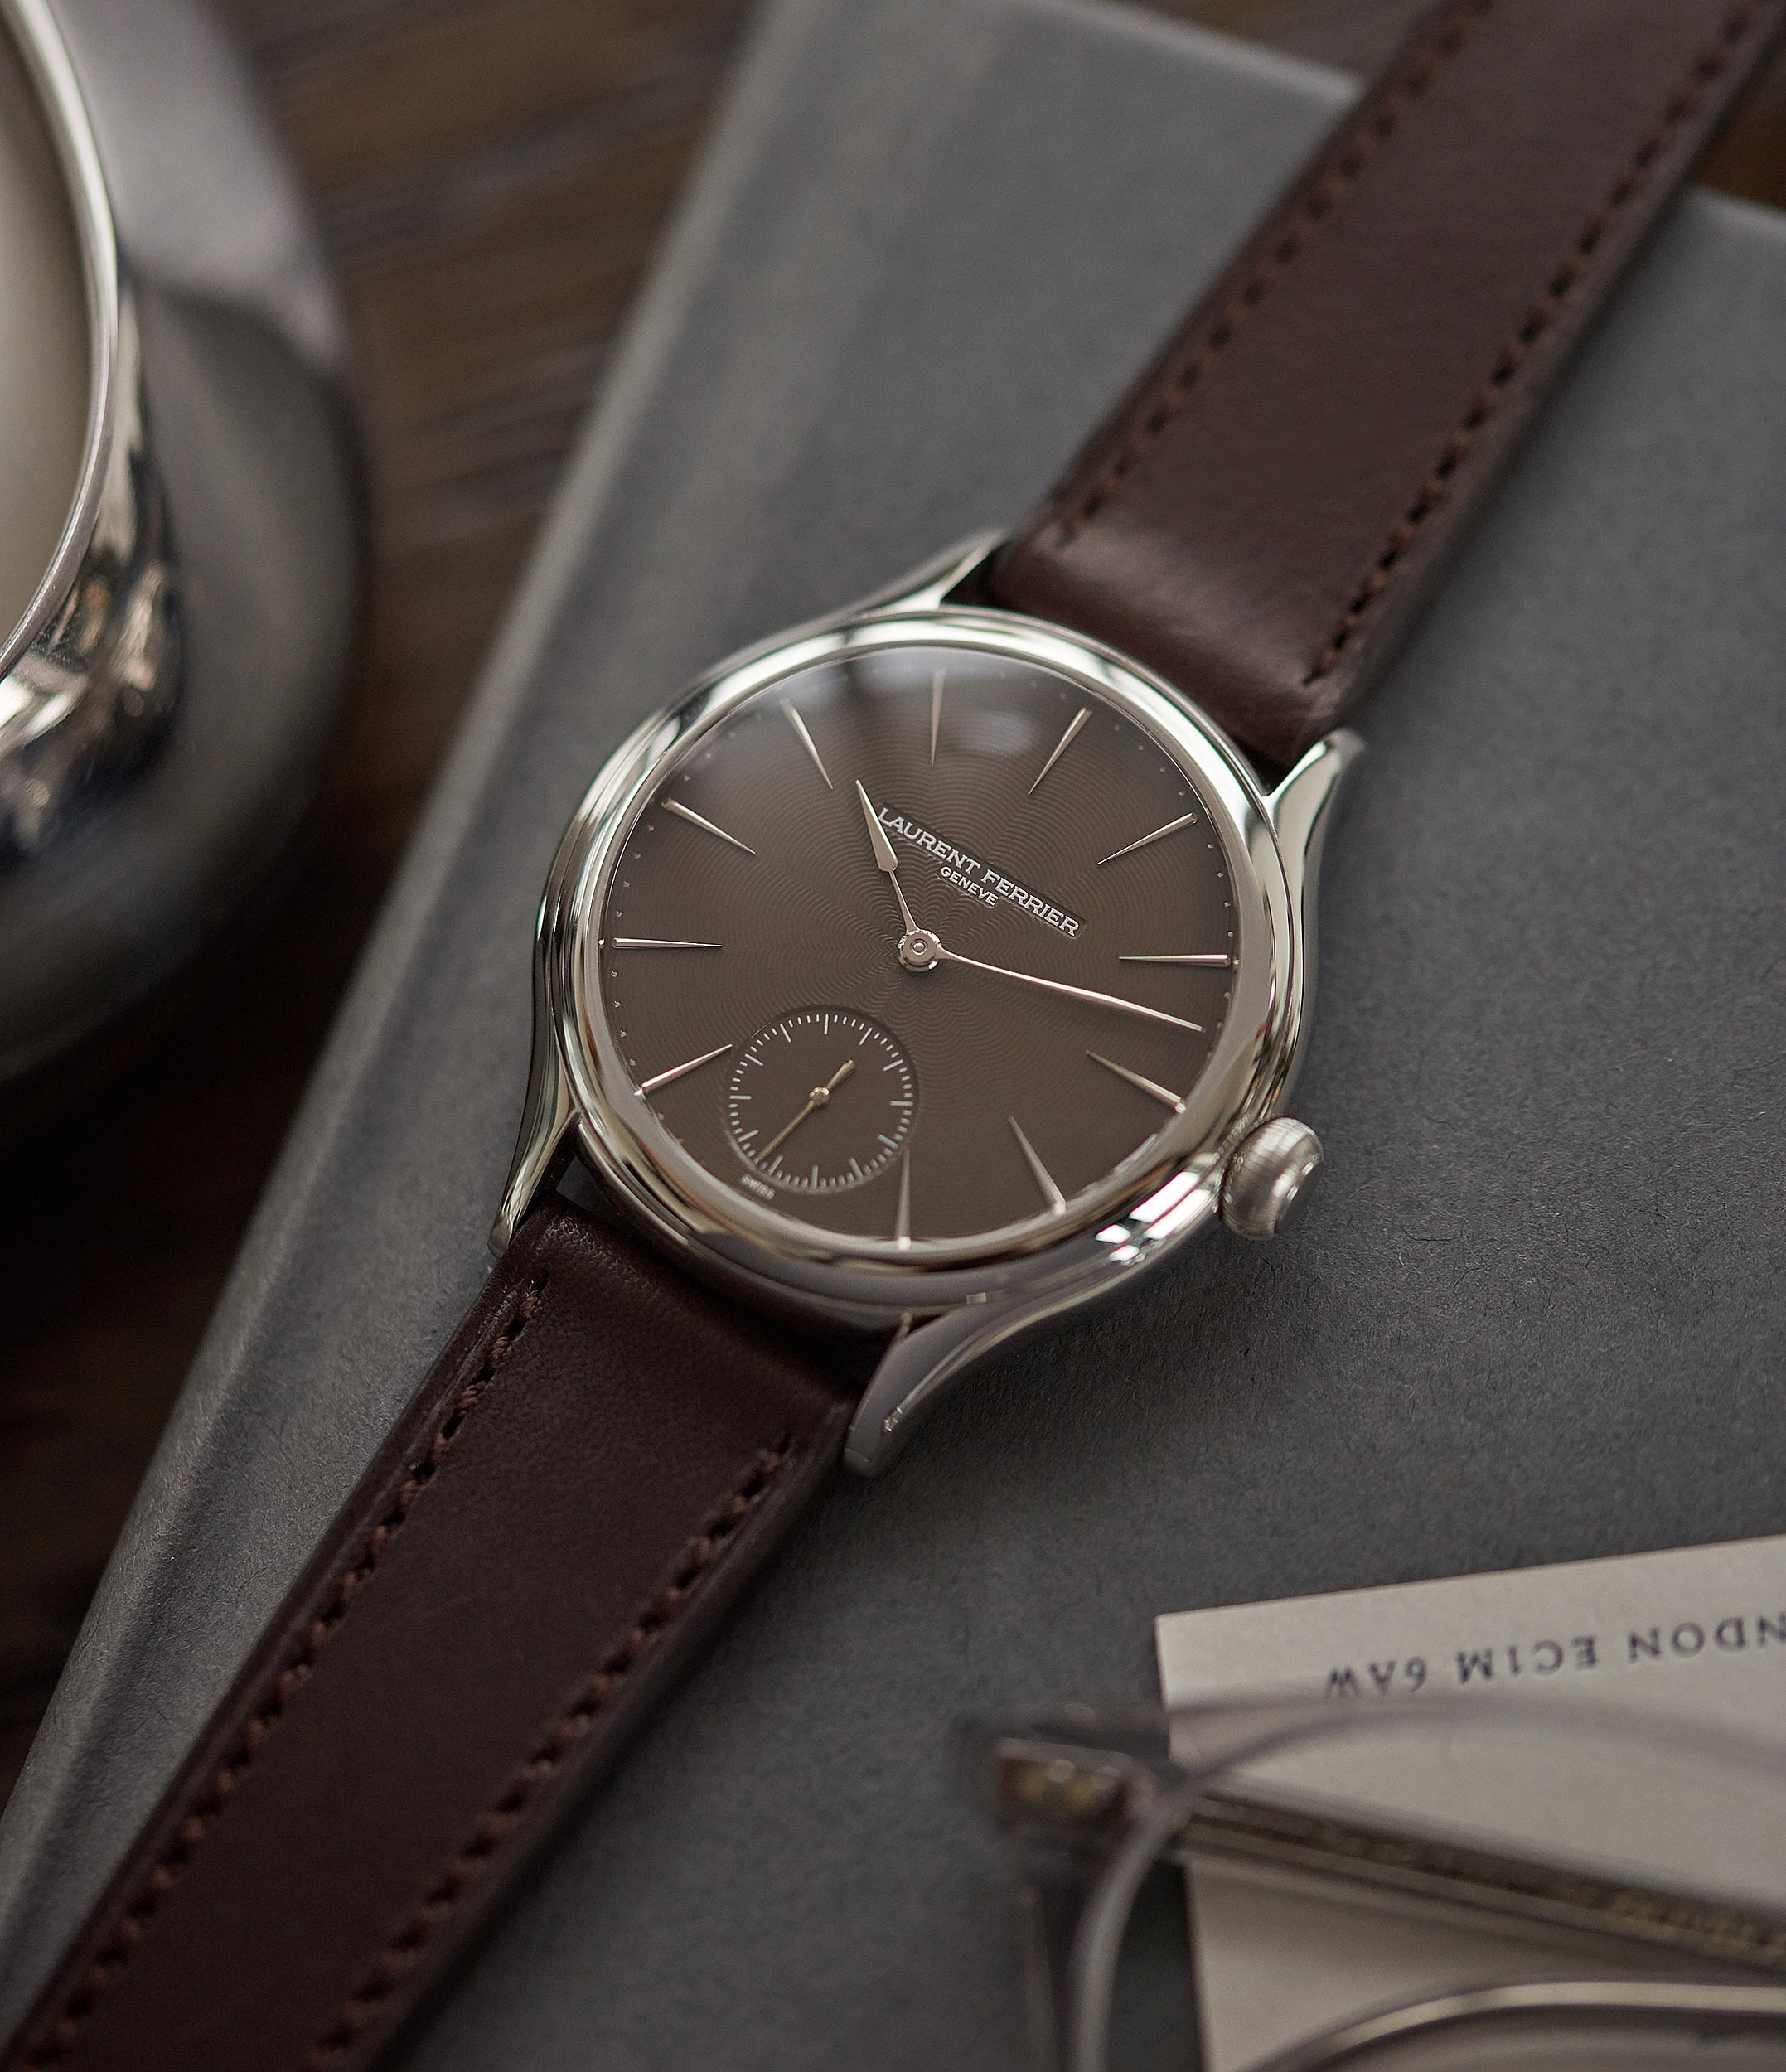 "one-of-a-kind Laurent Ferrier Prototype Galet Micro-rotor LF 229.01 ""Only Watch 2011"" steel watch brown dial for sale online at A Collected Man London UK approved seller of independent watchmakers"